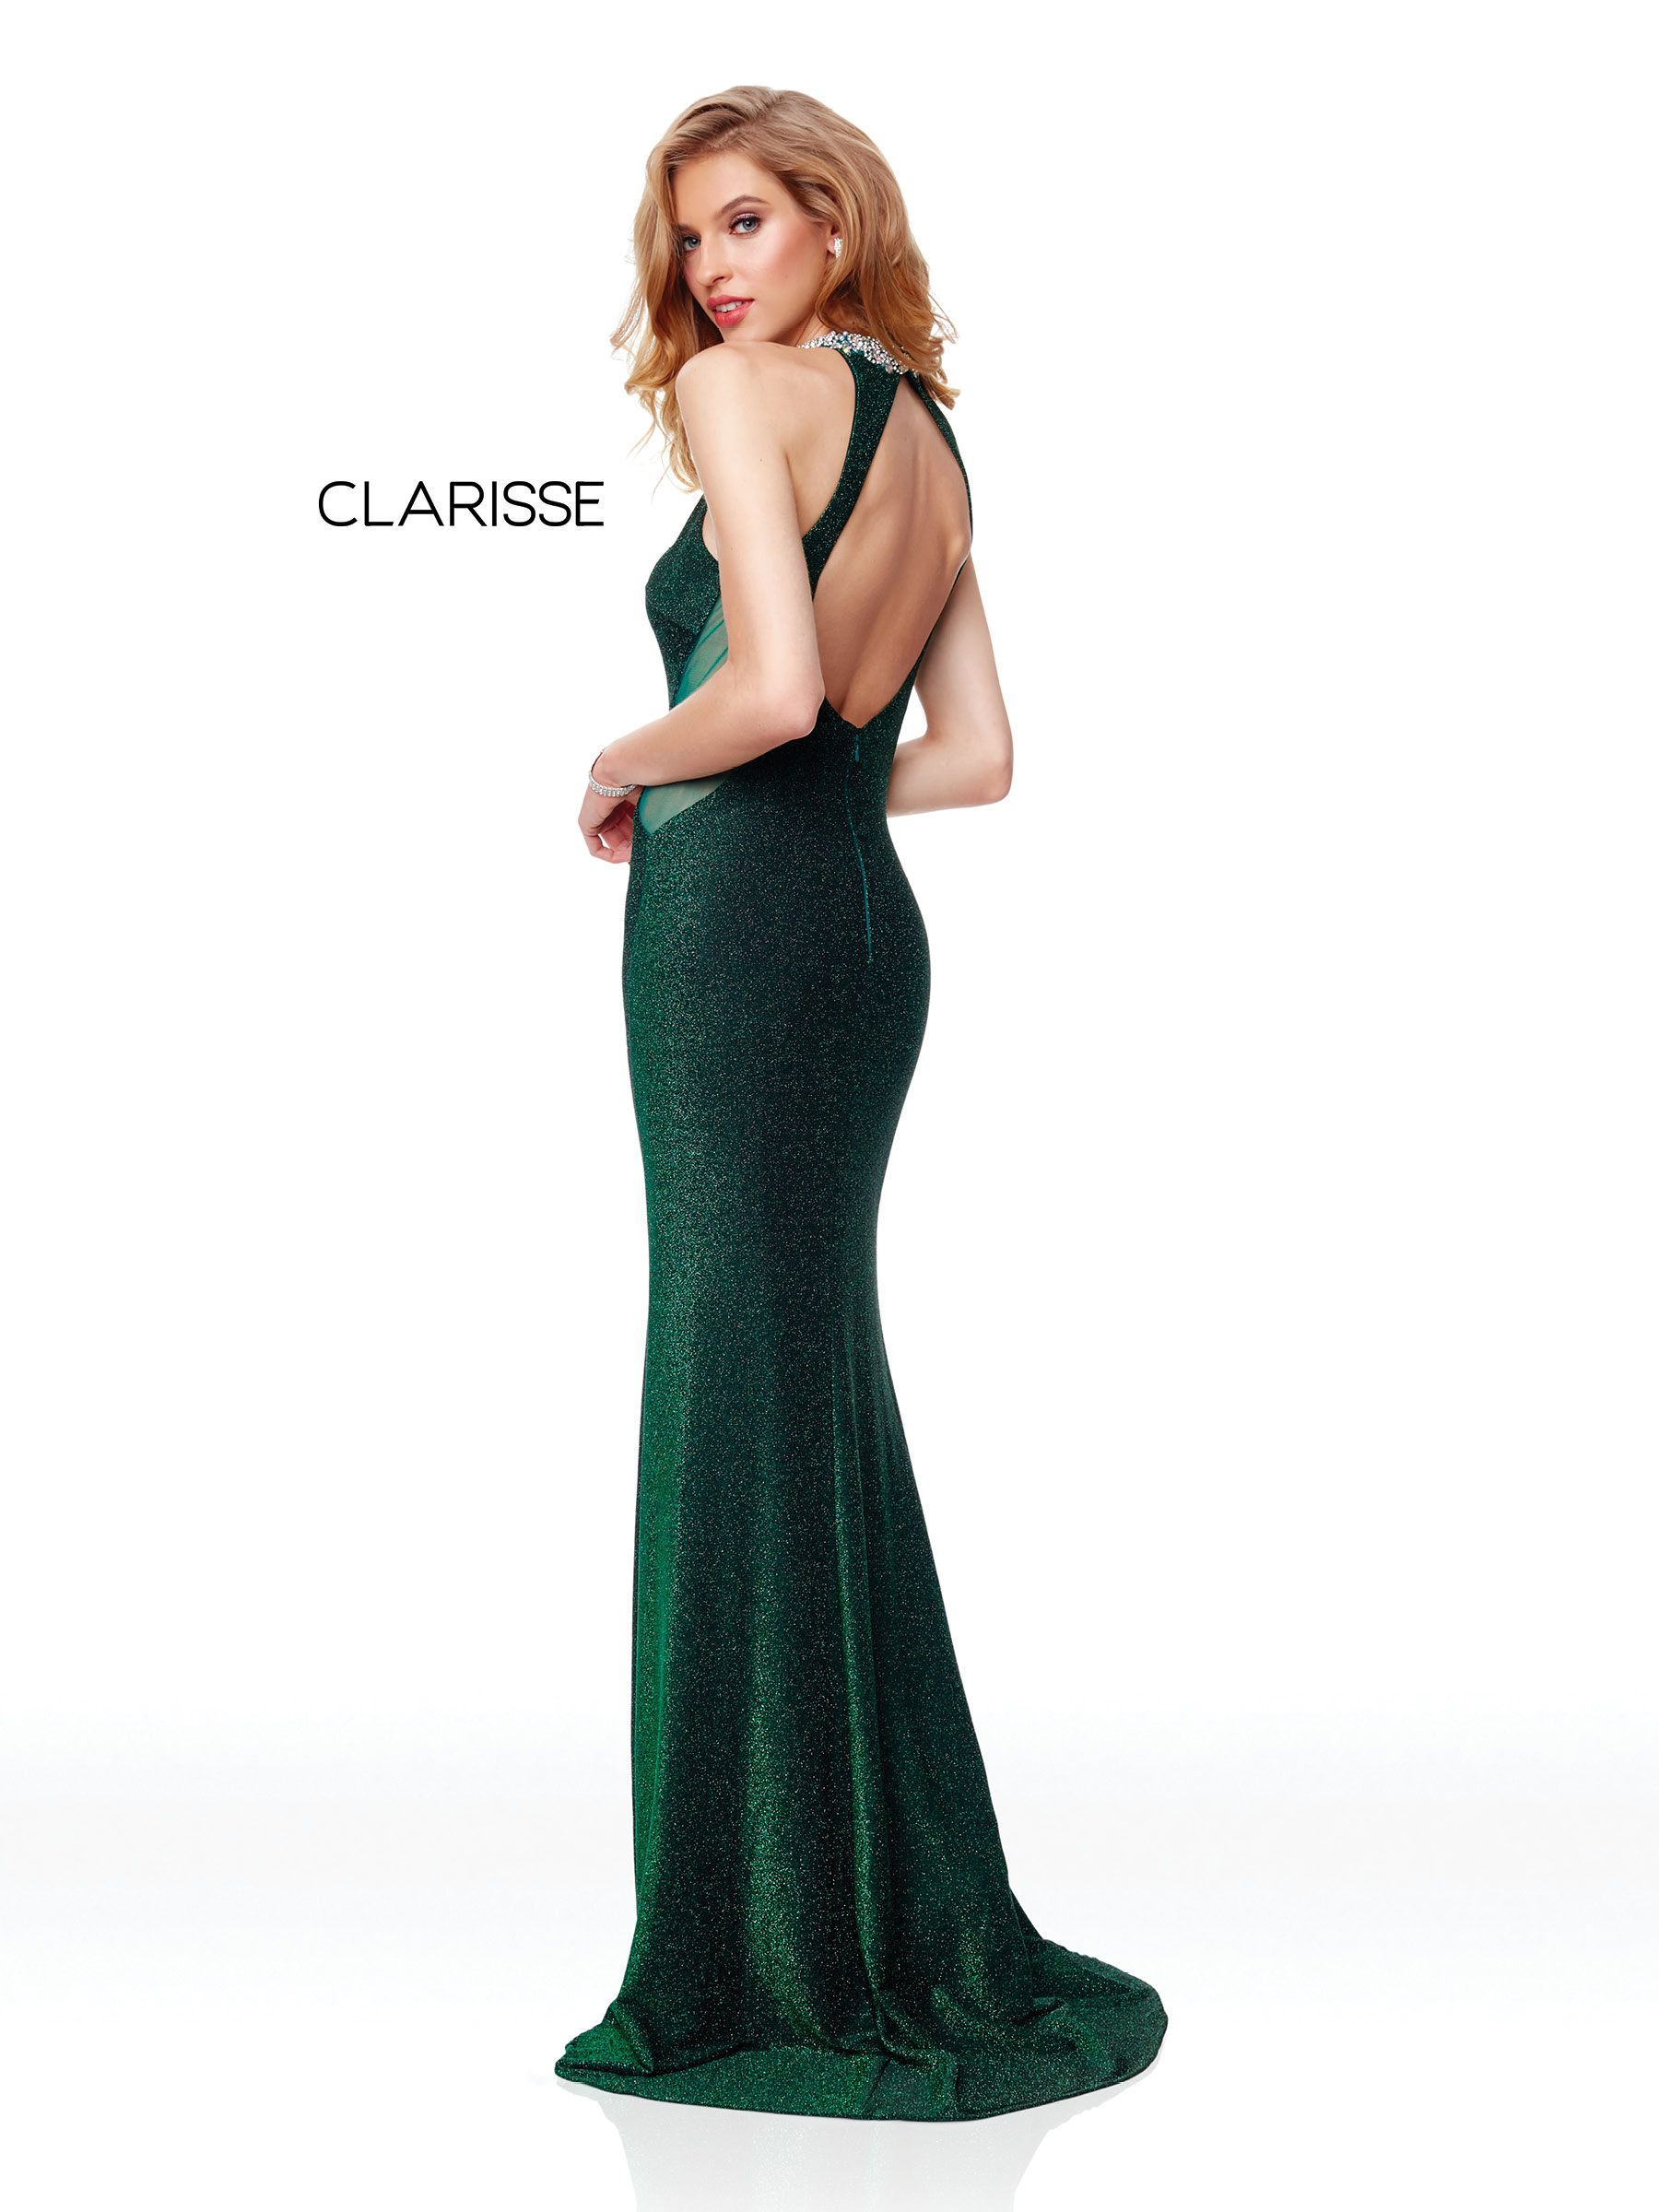 0414ce94135db 3745 - Emerald green shimmer jersey prom dress with a beaded detail halter  neck and an open back